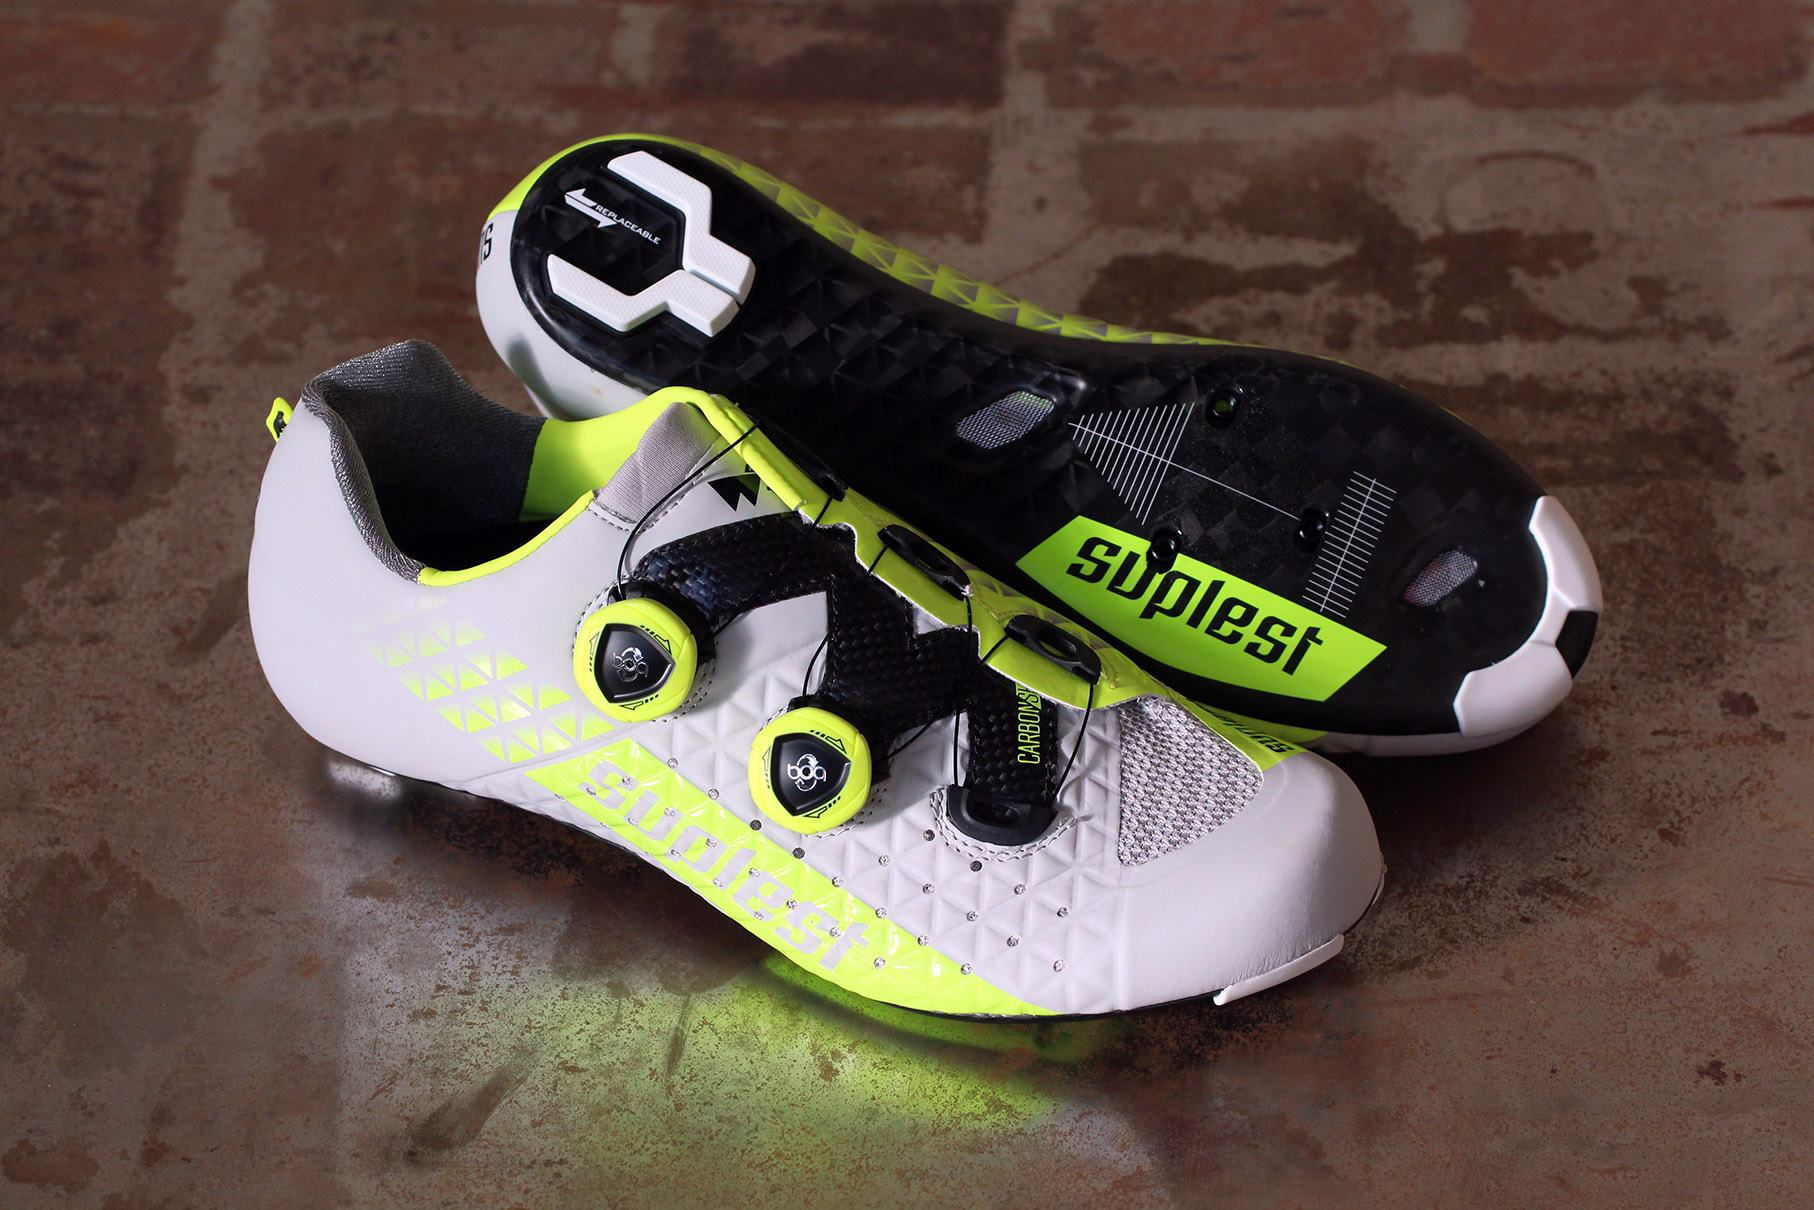 separation shoes stable quality many styles Review: Suplest Edge/3 Pro Road cycling shoe | road.cc